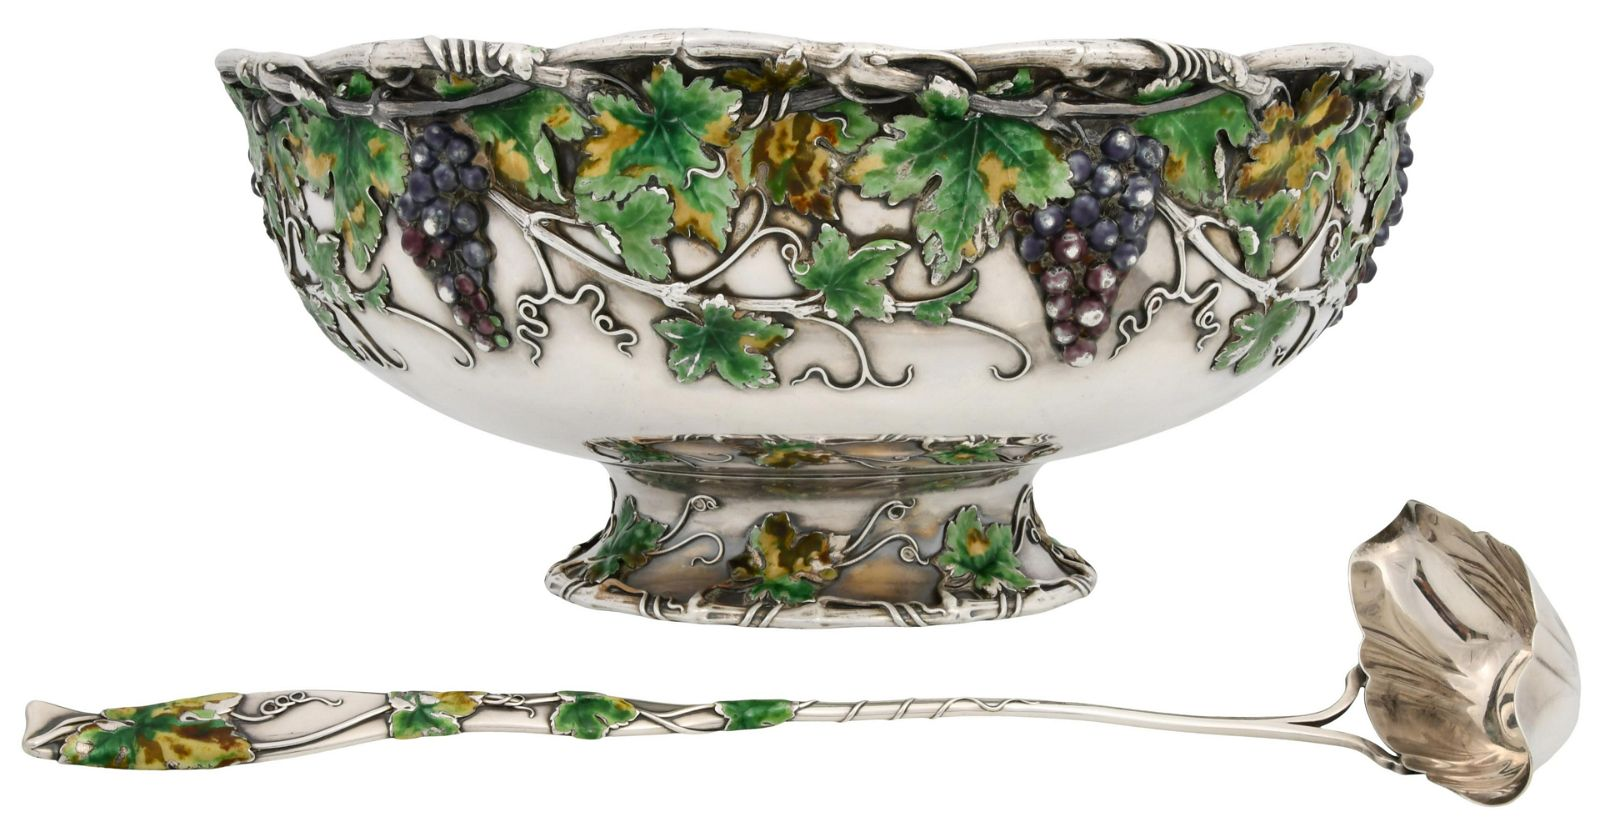 Whiting Mfg. Co. Sterling Silver & Enamel Punch Bowl &